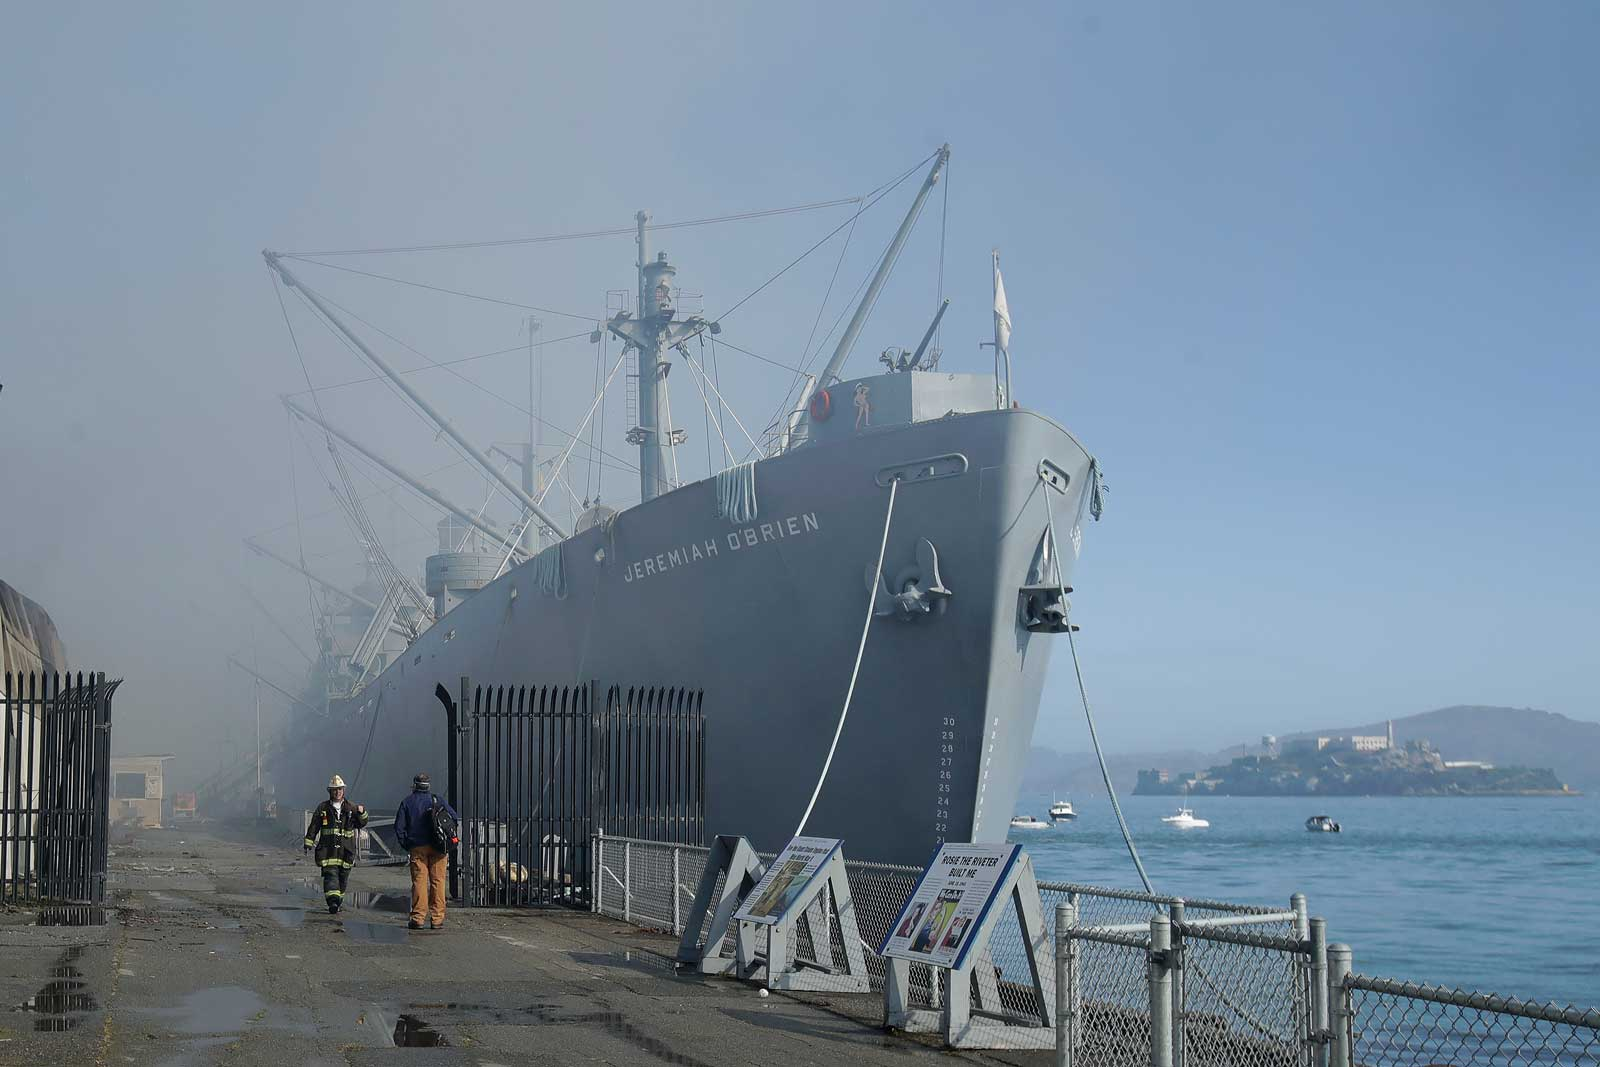 Fire officials stand in front of the SS Jeremiah O'Brien ship after a fire broke out